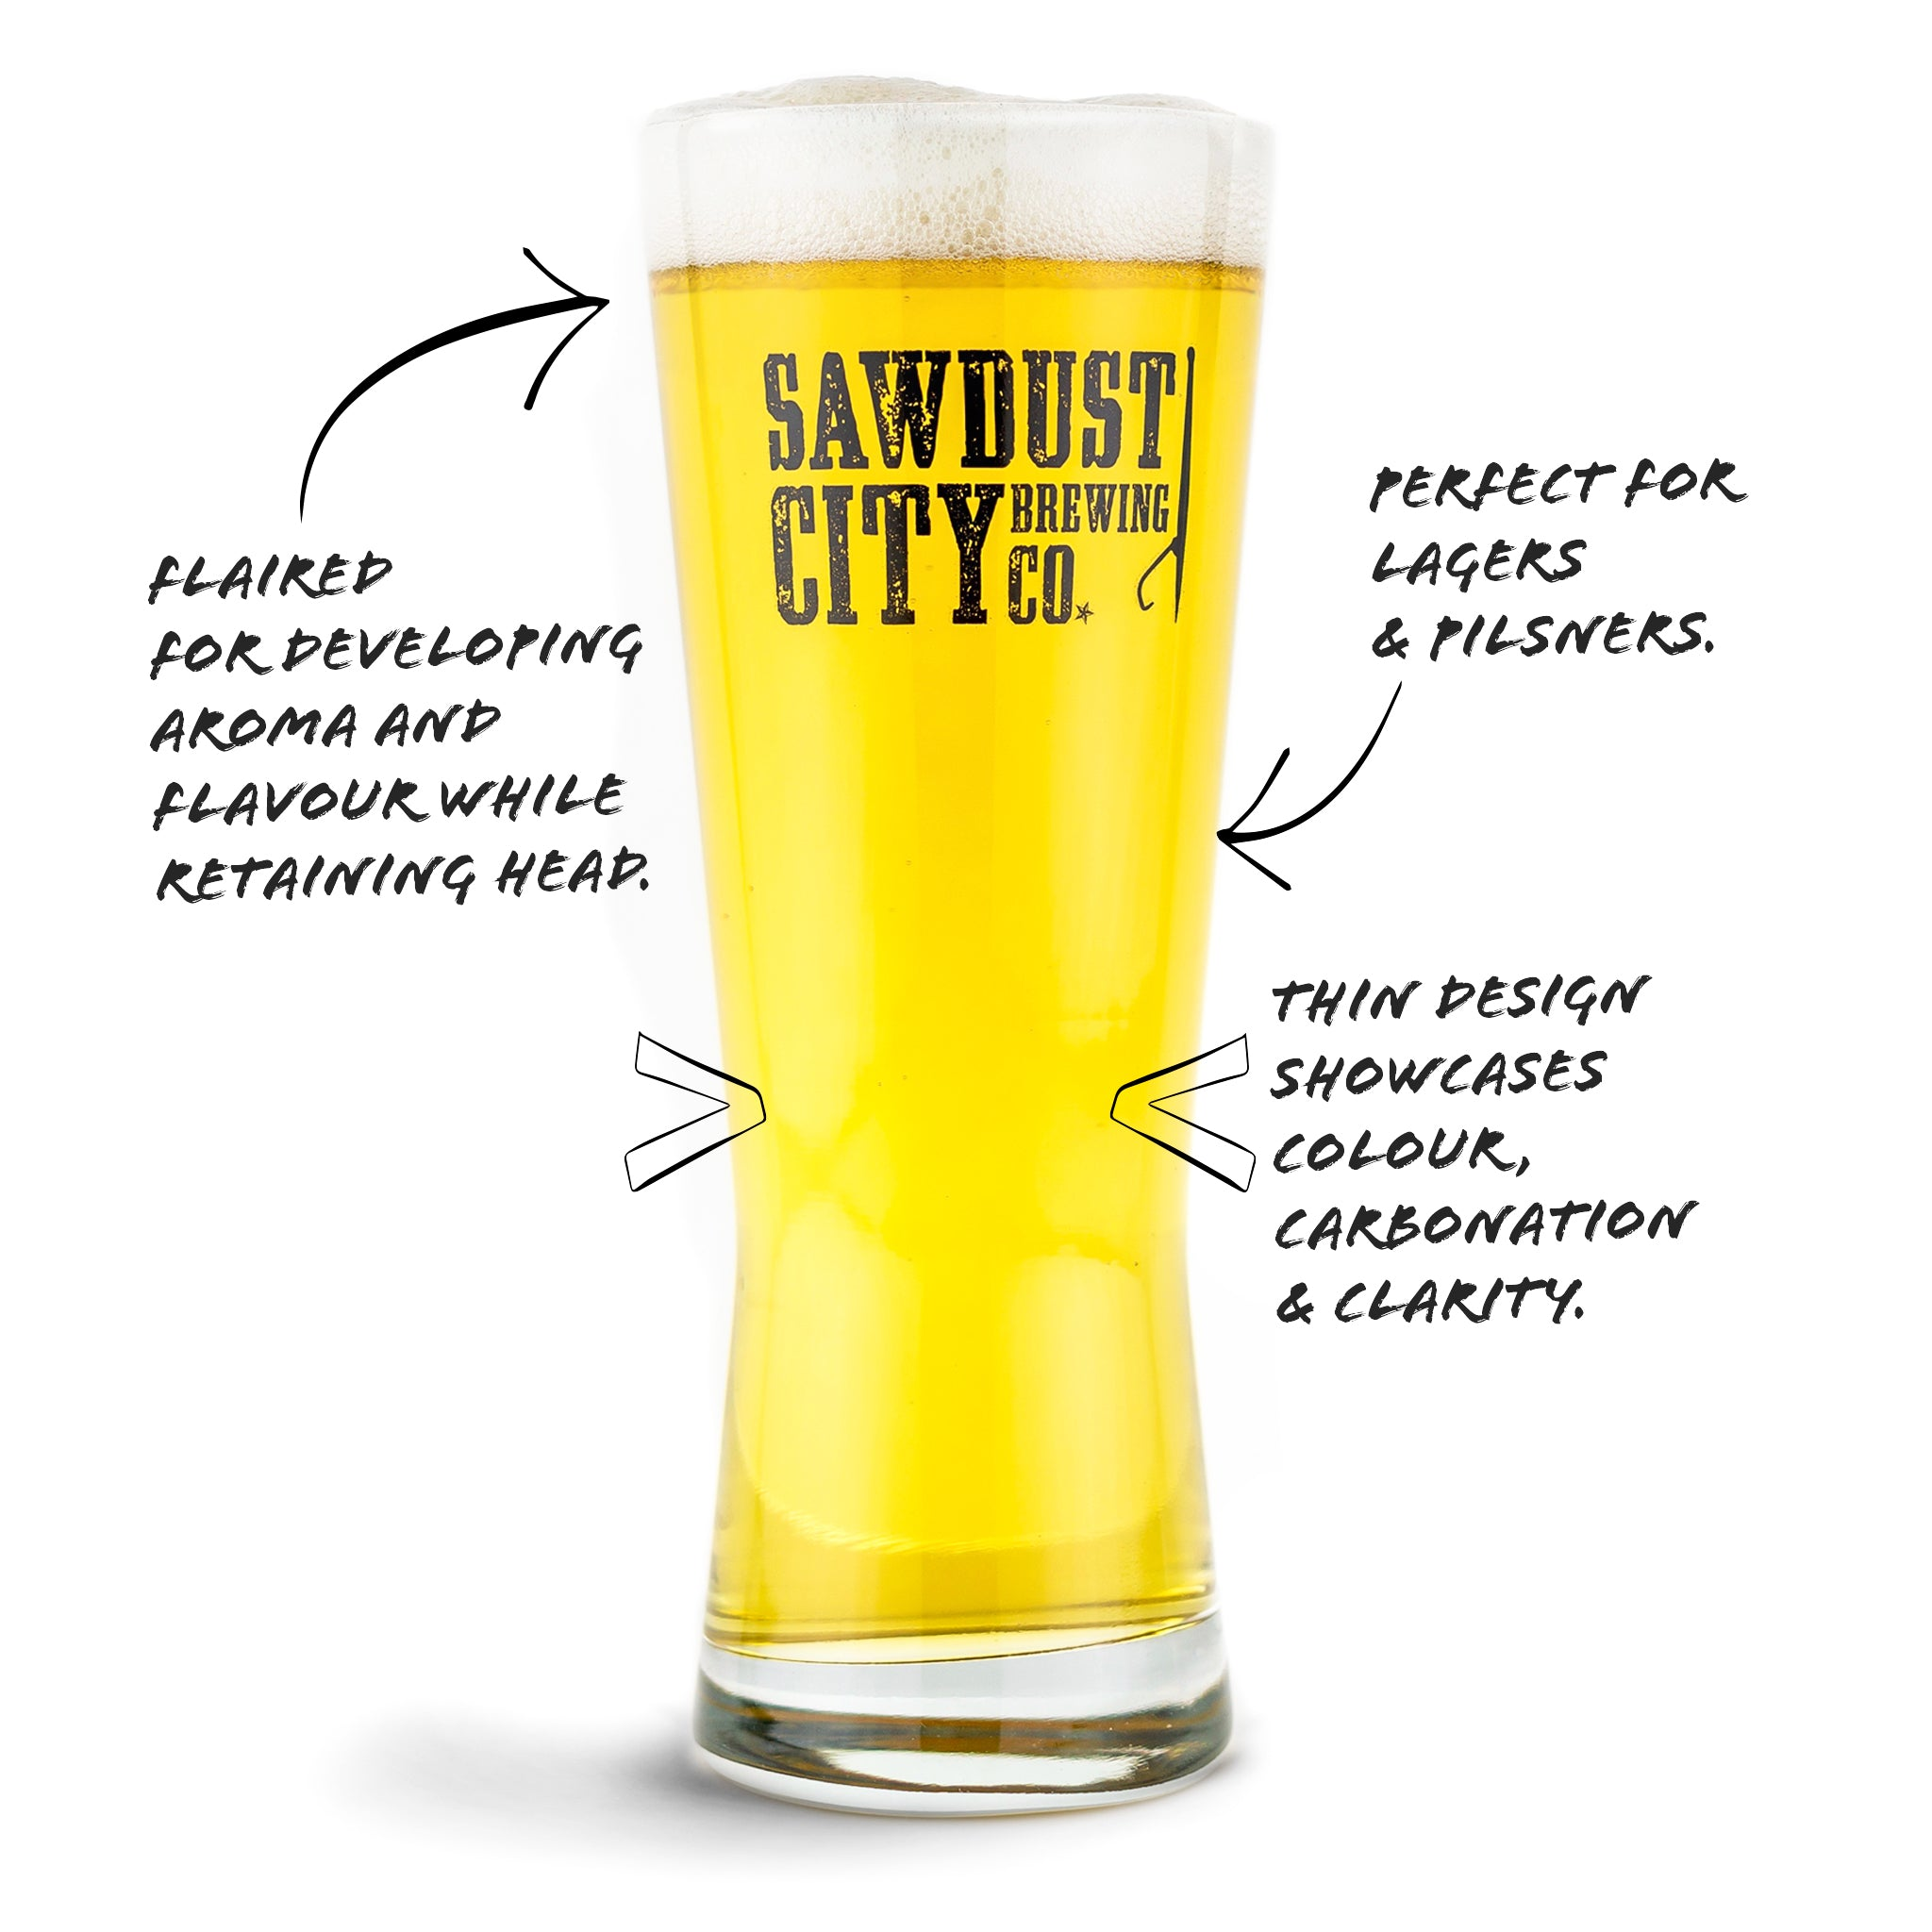 About the Lager Glass Shape